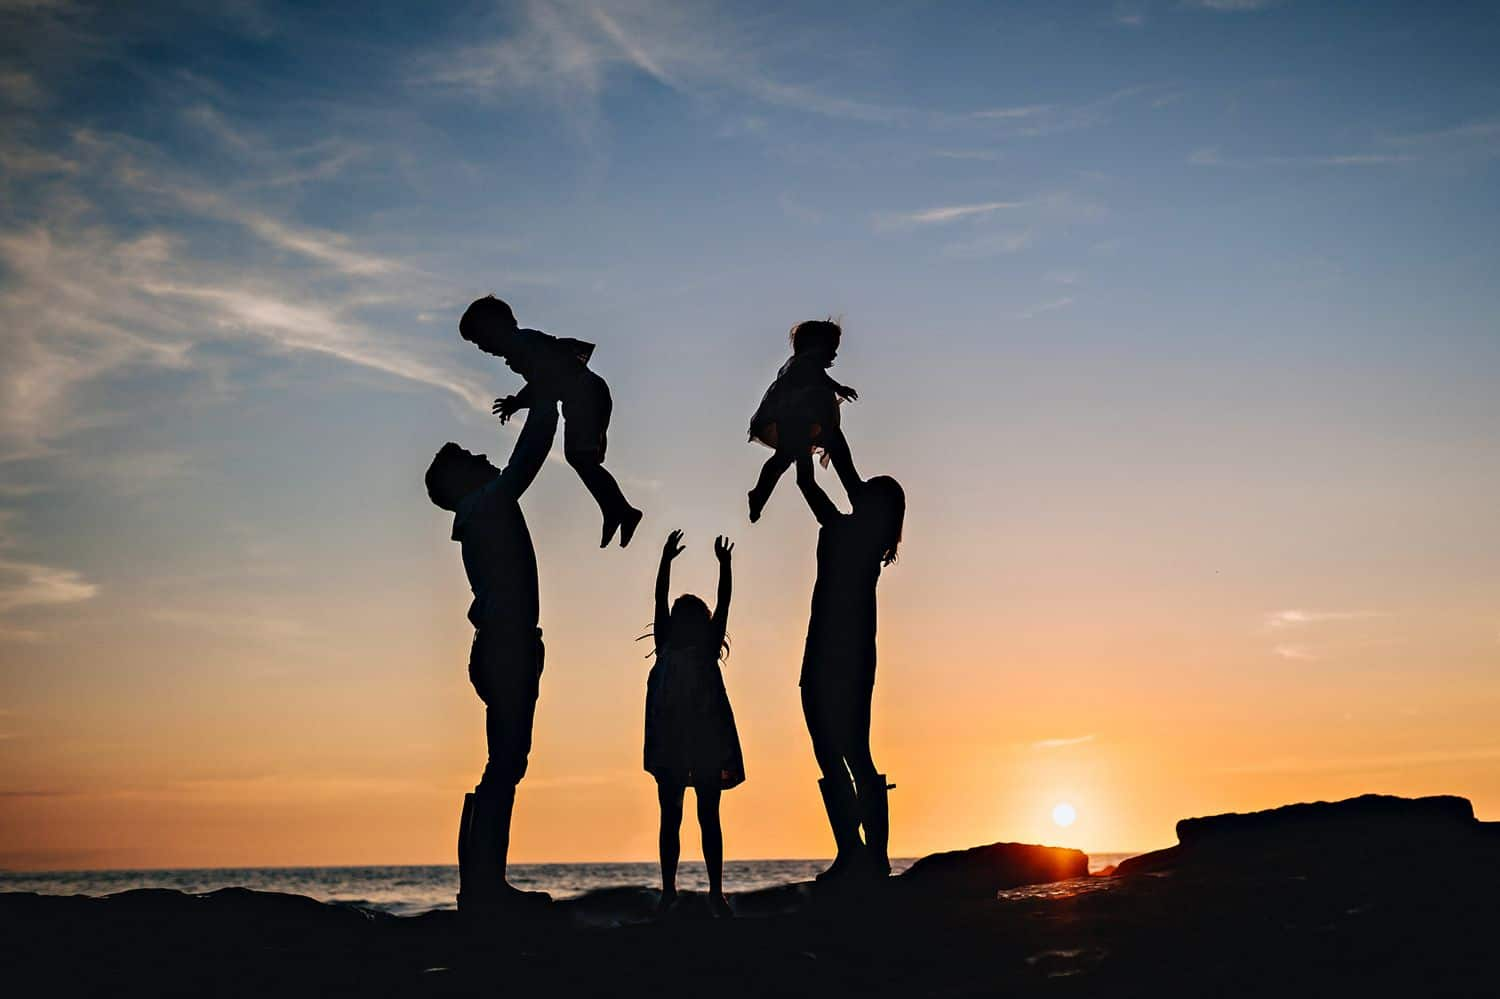 Silhouette of two parents lifting their children into the sky overlooking a beach at sunset. A third child stands in between them with her arms lifted.